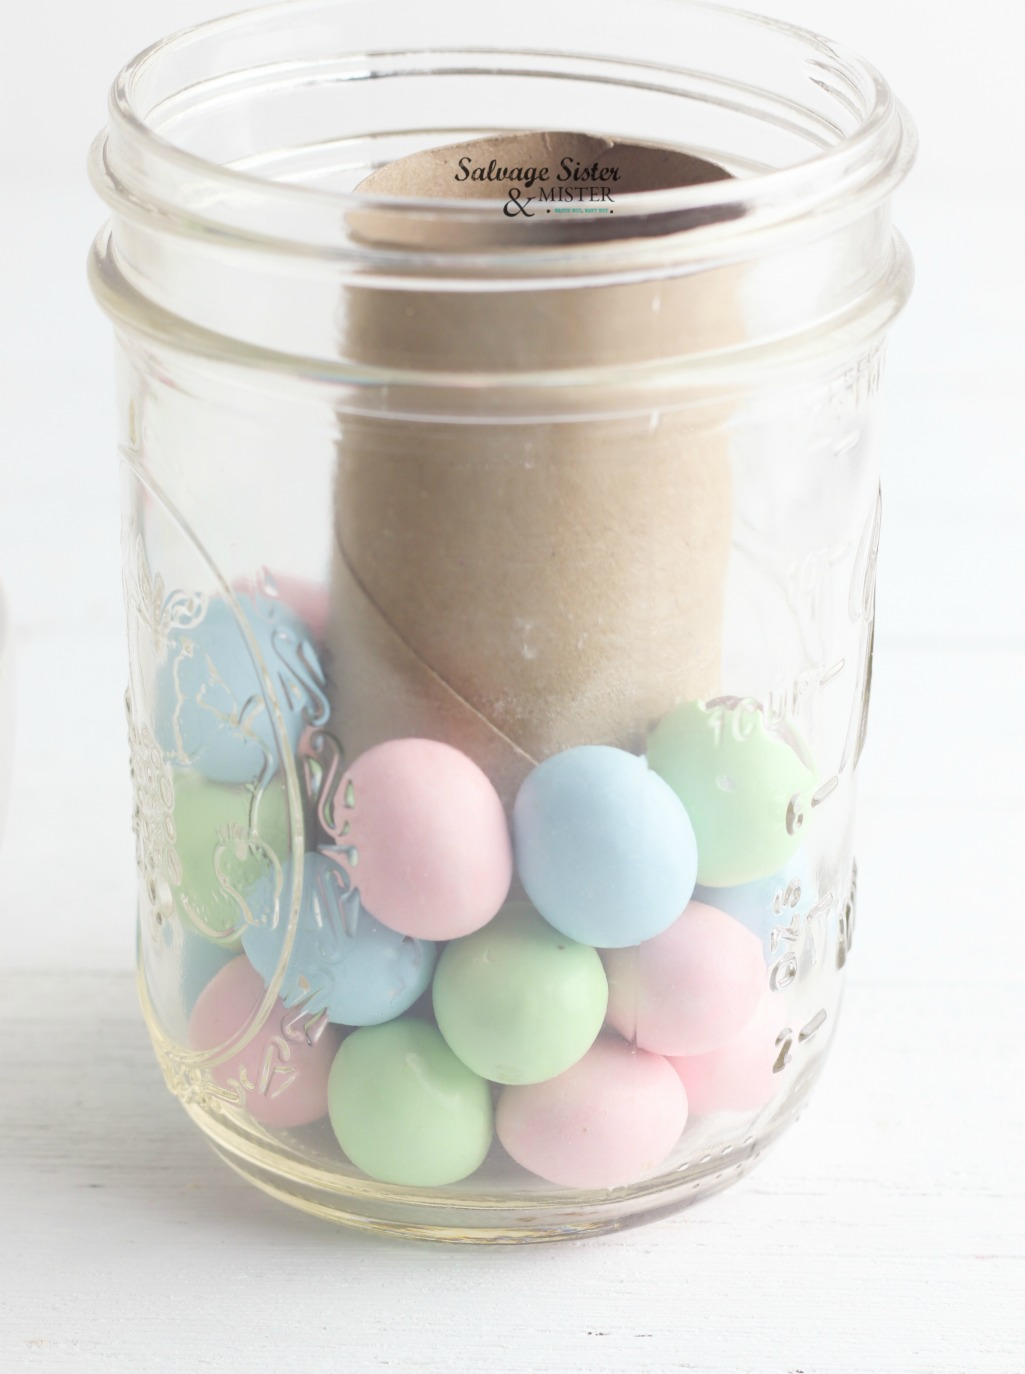 Simple easter craft to make using items you already have (reusing). Make this mason jar candy easter vase for your home. Great way to add some holiday cheer. Craft on salvagesisterandmister.com